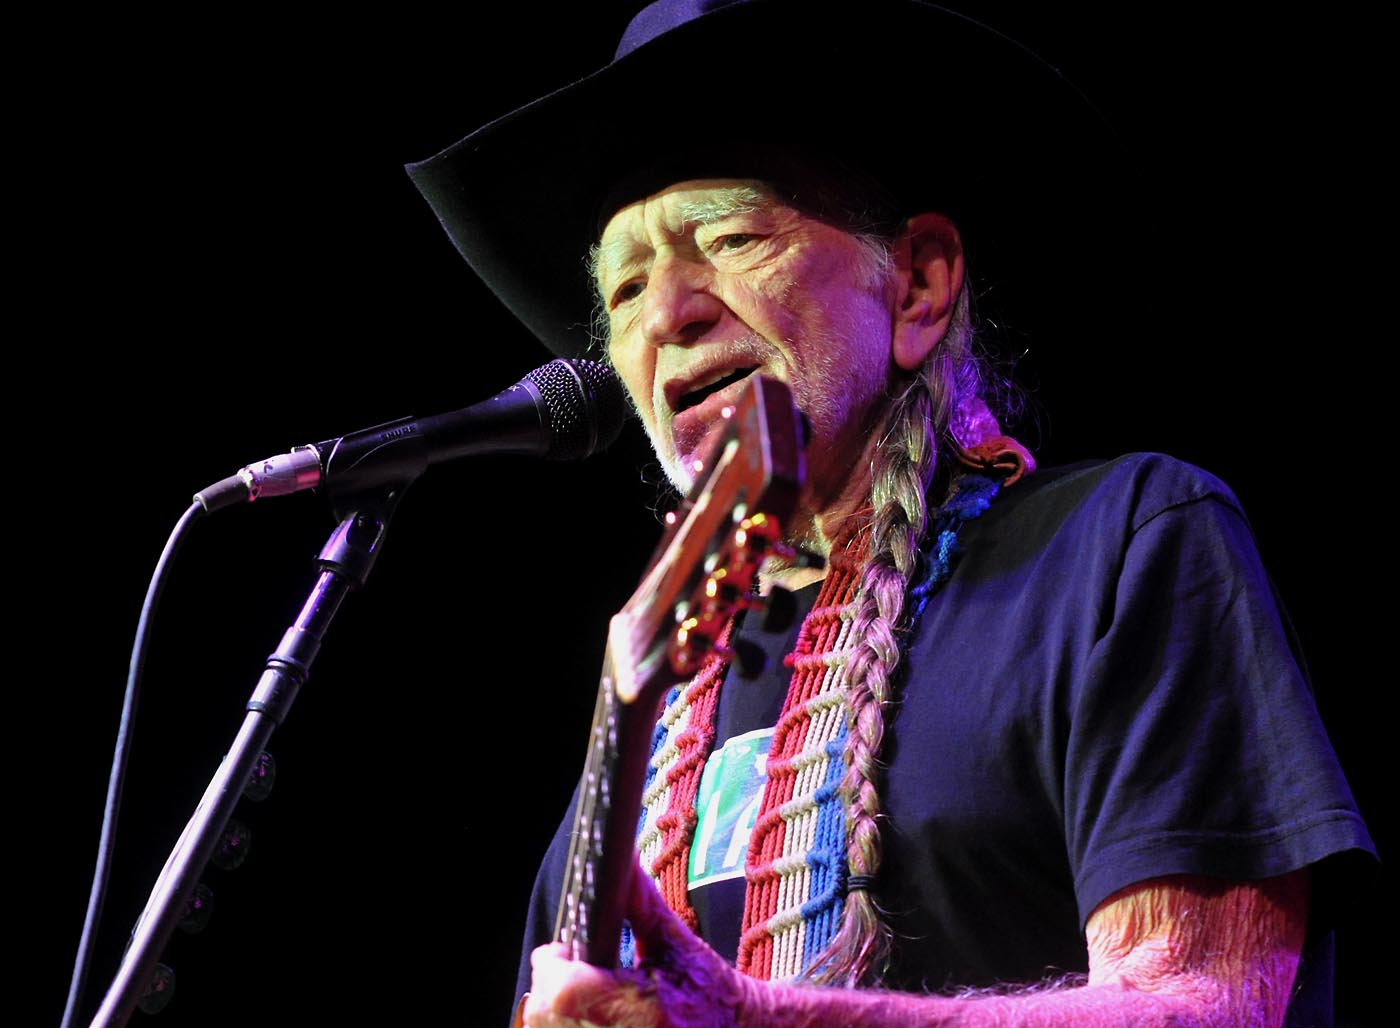 Willie nelson sands casino tickets terribles casino reviews